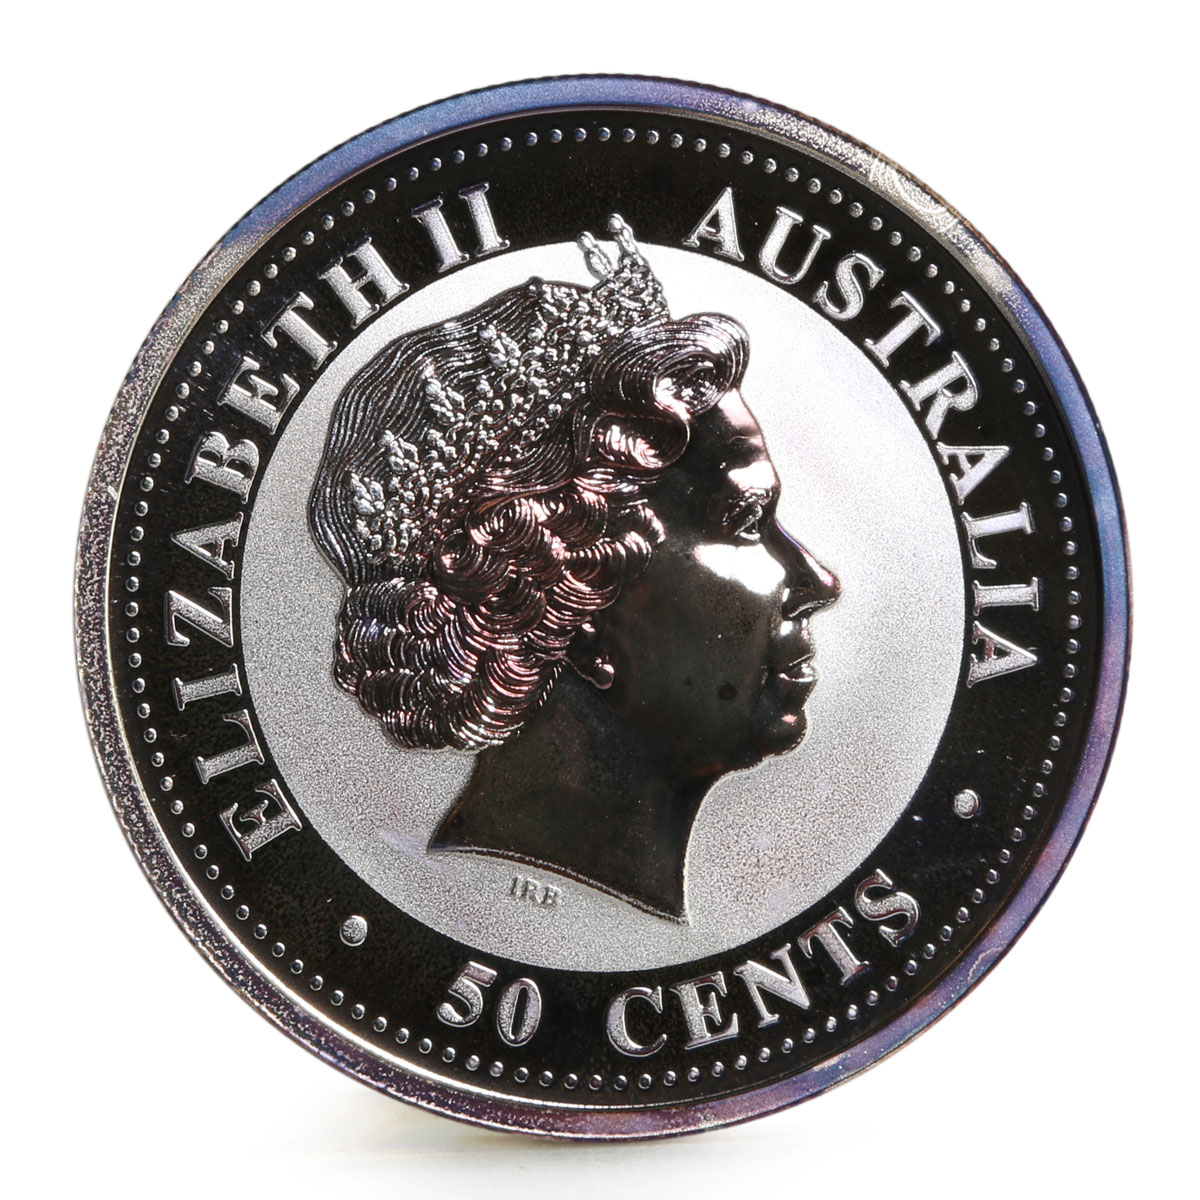 Australia 50 cents Lunar Calendar series I Year of the Goat silver coin 2003